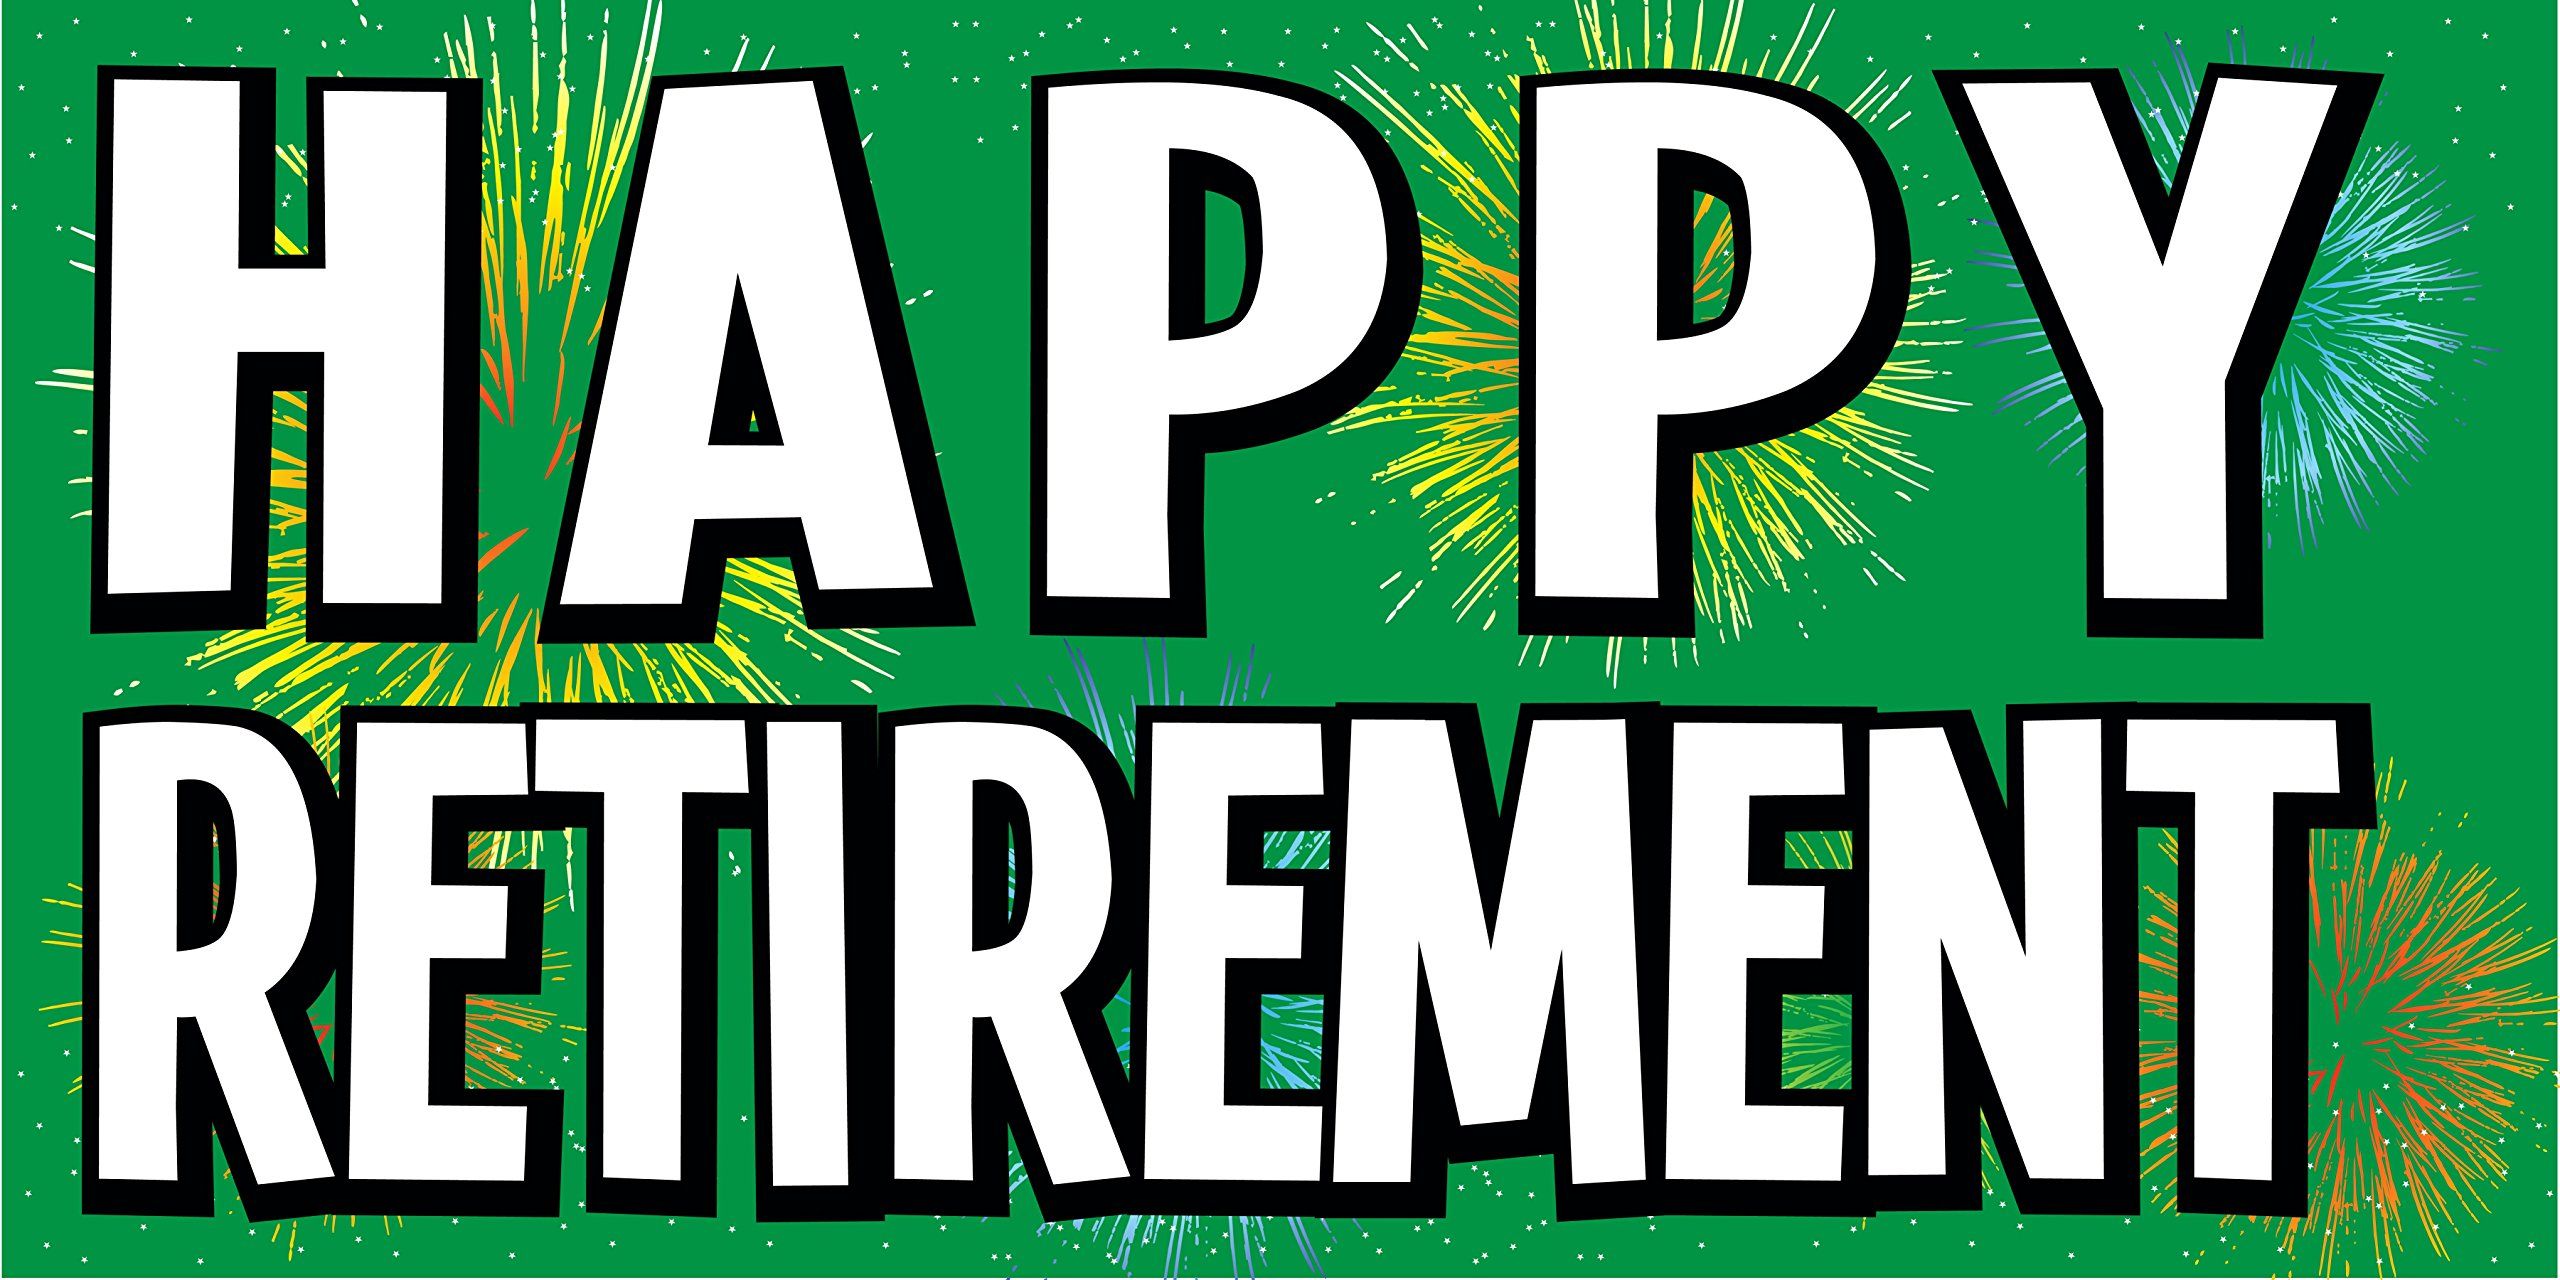 Pre-Printed Happy Retirement Banner - Fireworks - Green (10' x 5') Sewn with metal grommets